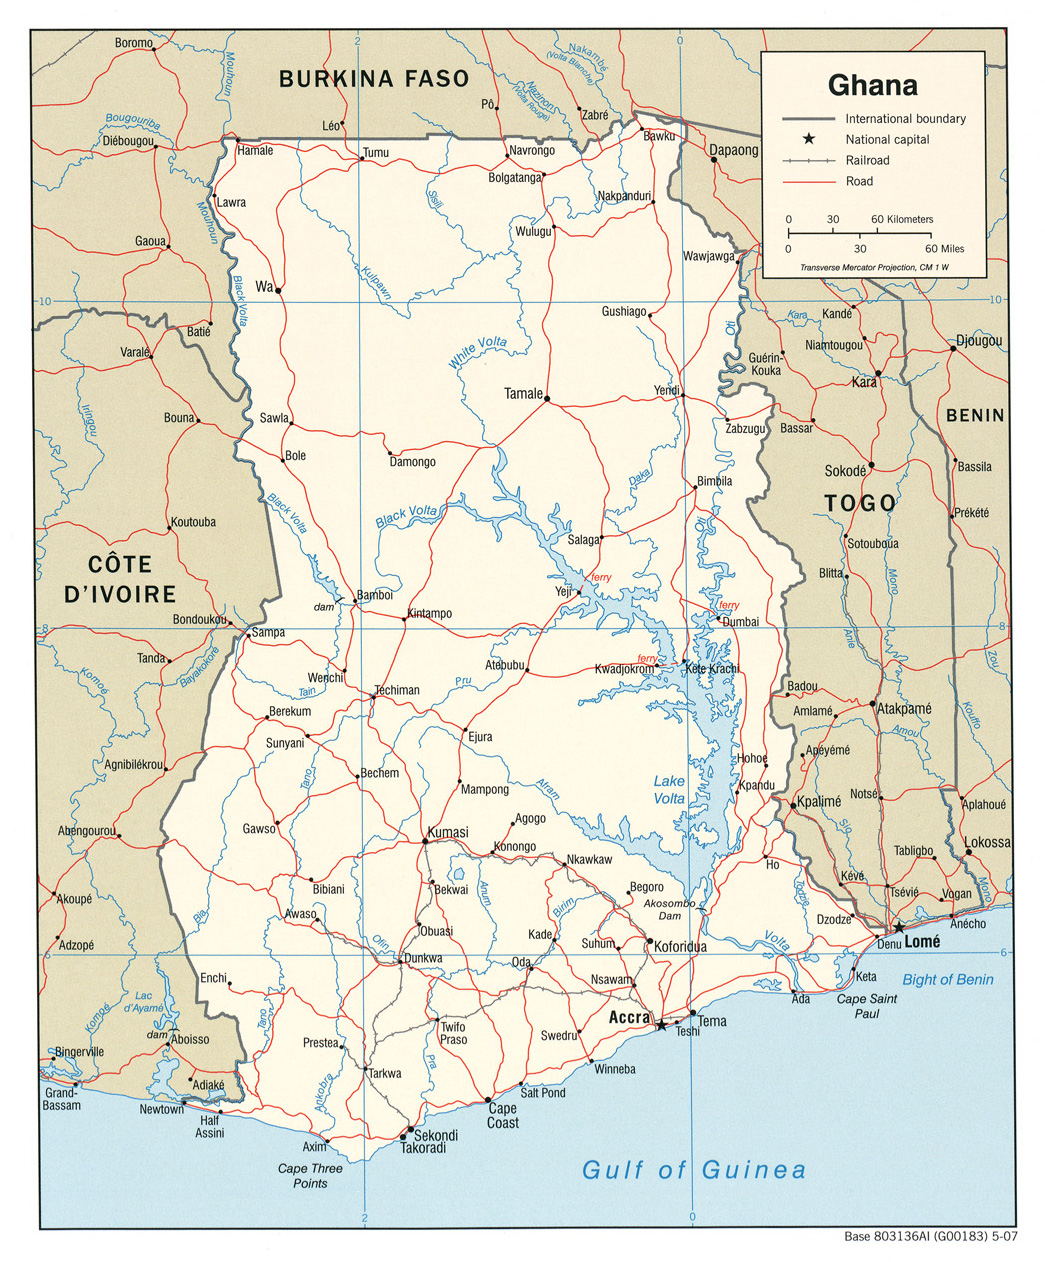 Ghana Maps - Perry-Castañeda Map Collection - UT Library Online